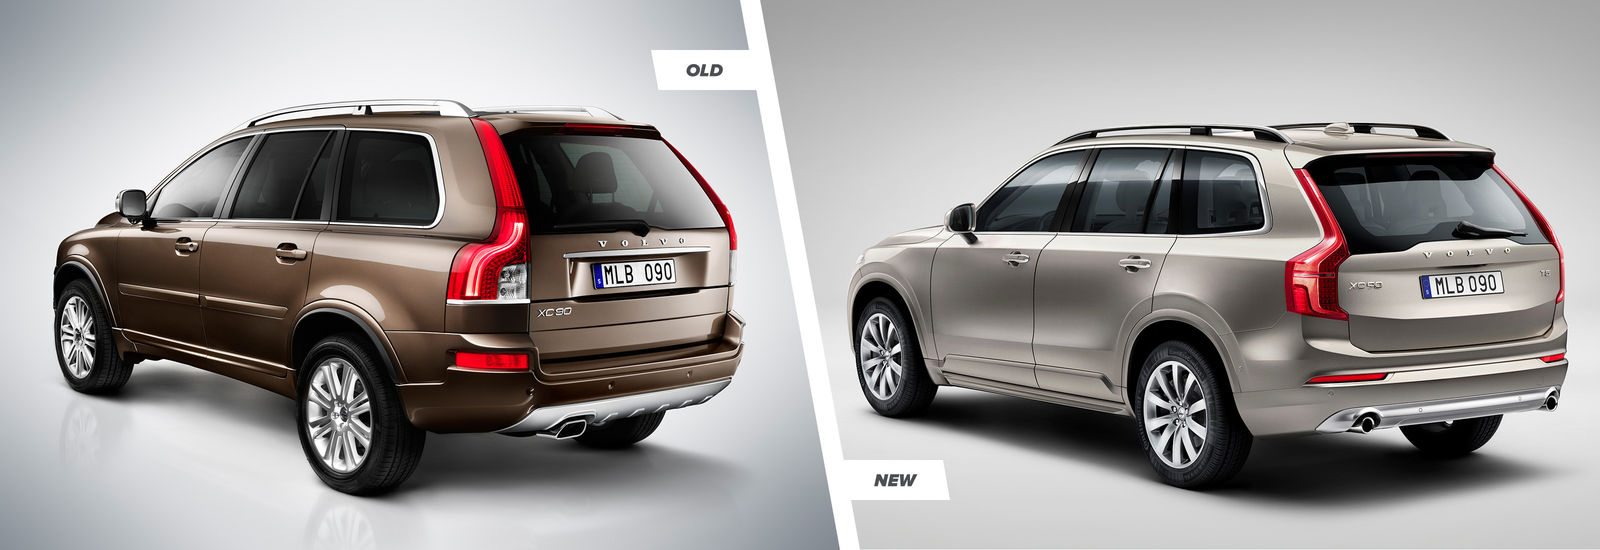 2015 volvo xc90 old vs new side by side comparison carwow. Black Bedroom Furniture Sets. Home Design Ideas